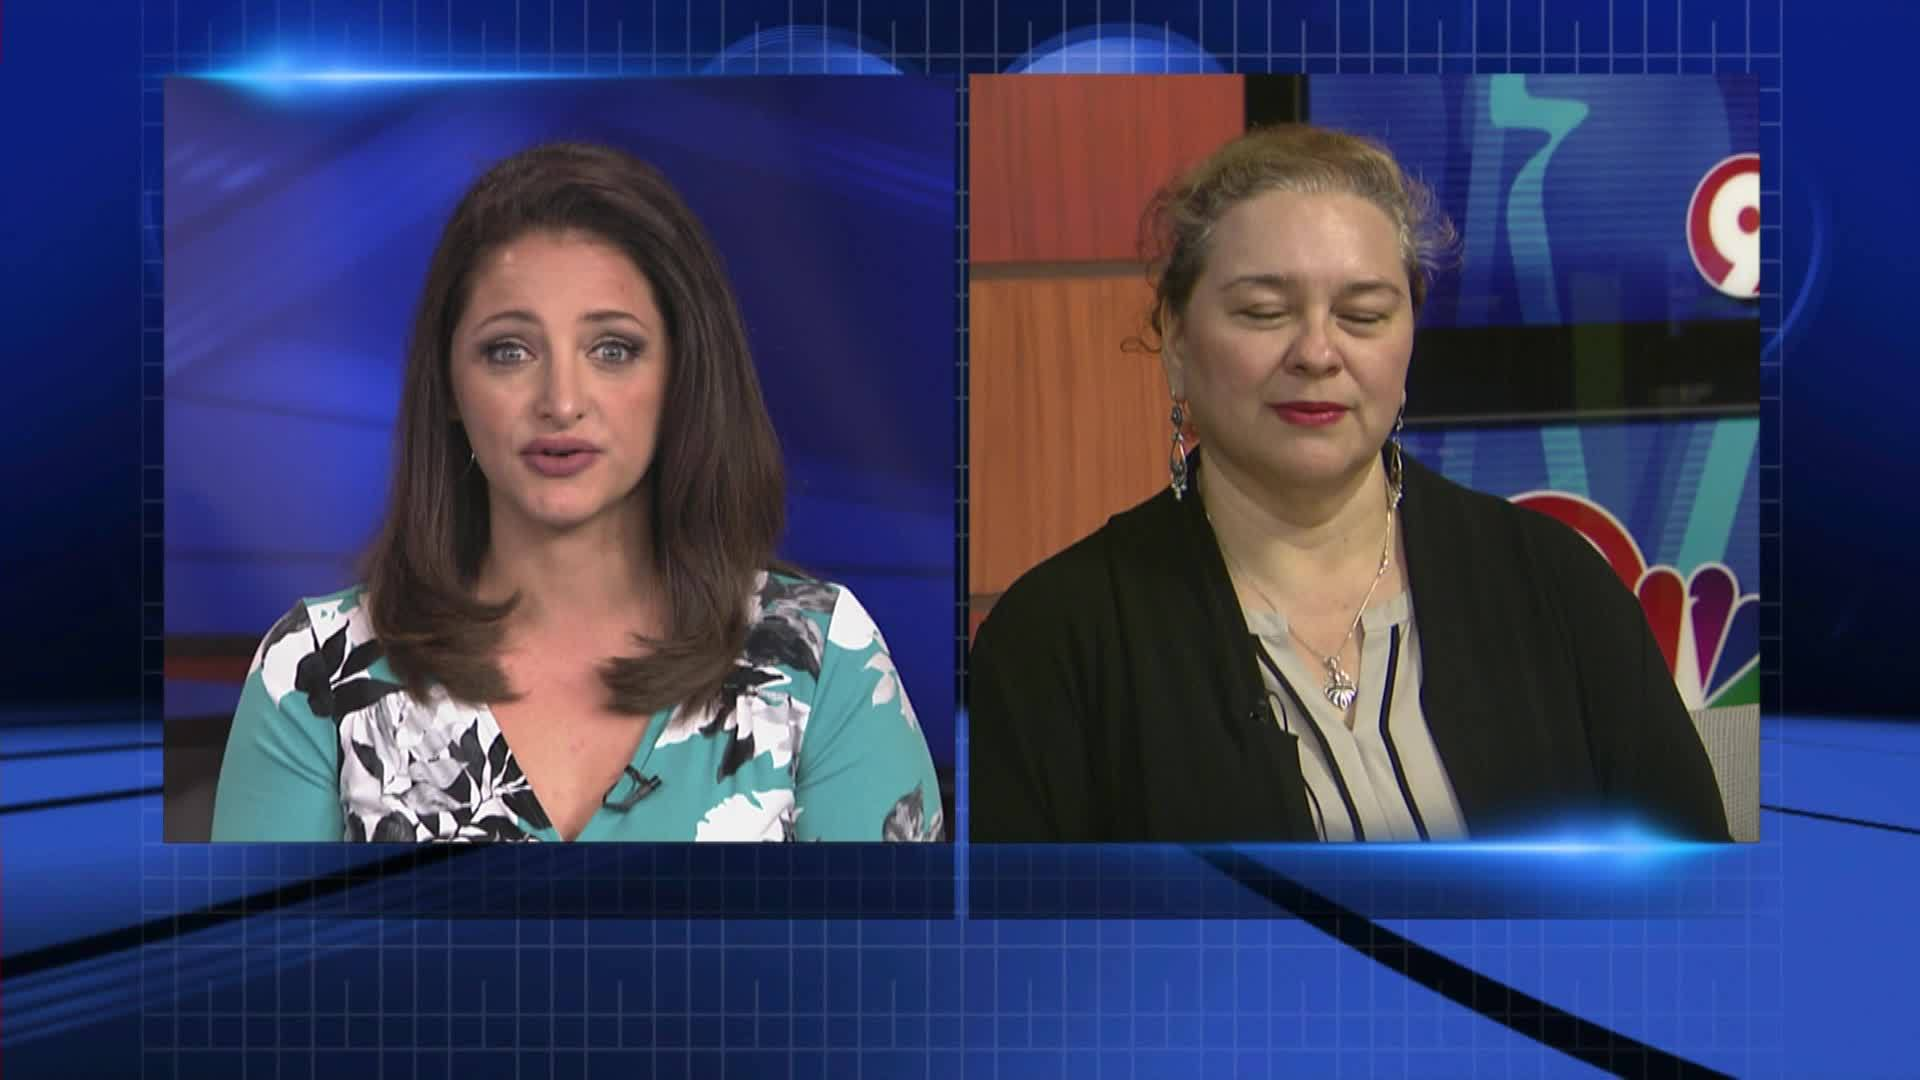 Full interview with Guillermina Gina Nunez-Mchiri